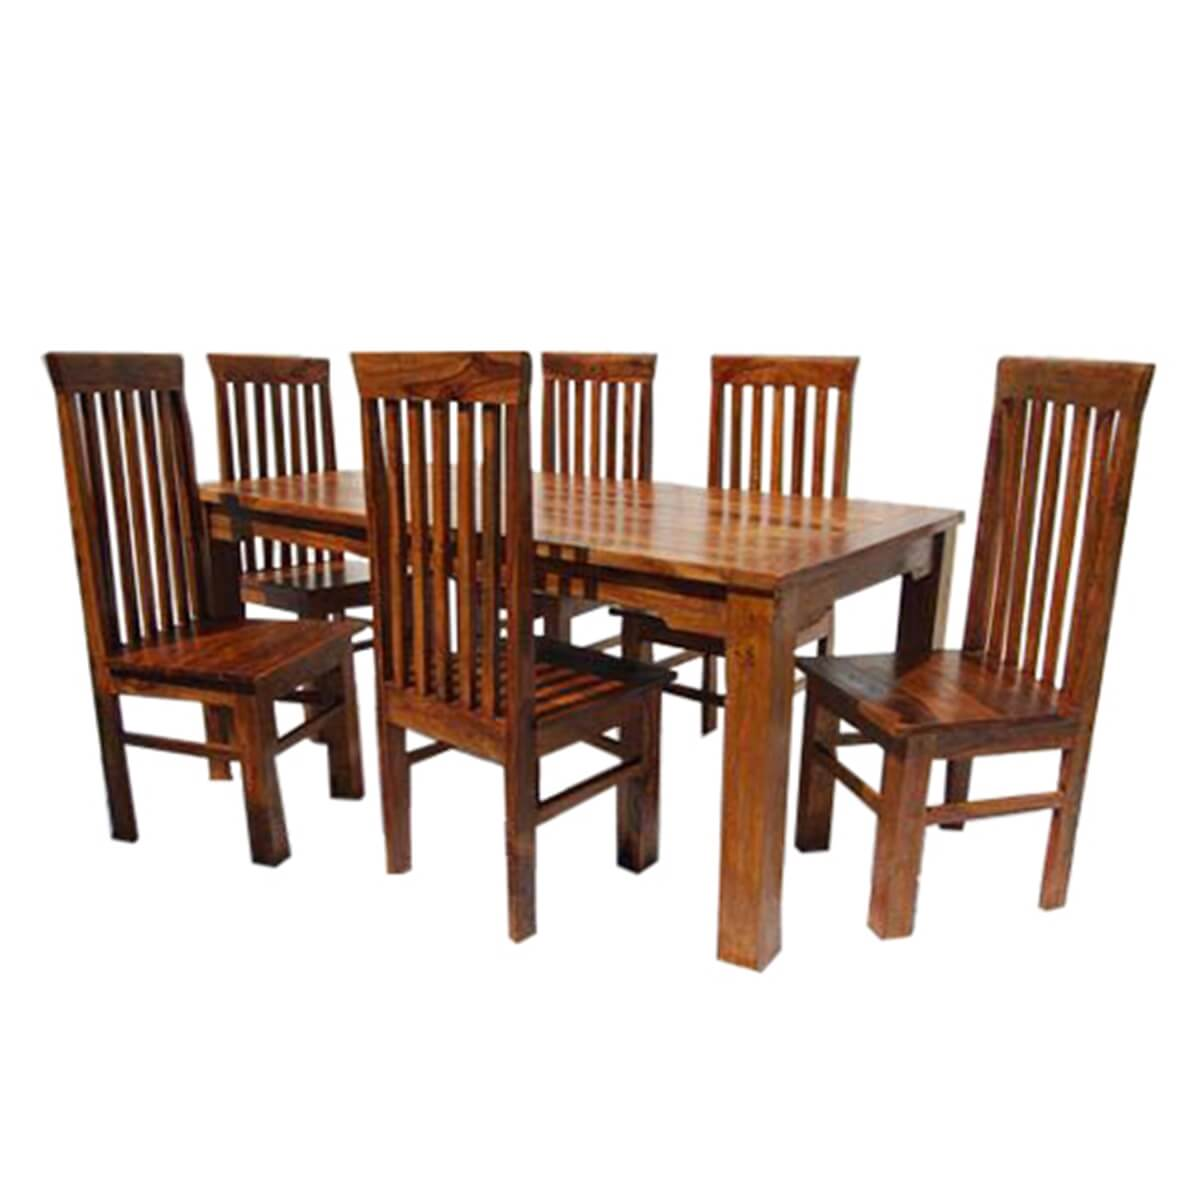 Lincoln study 7 piece dining table chair set for 7 piece dining set with bench